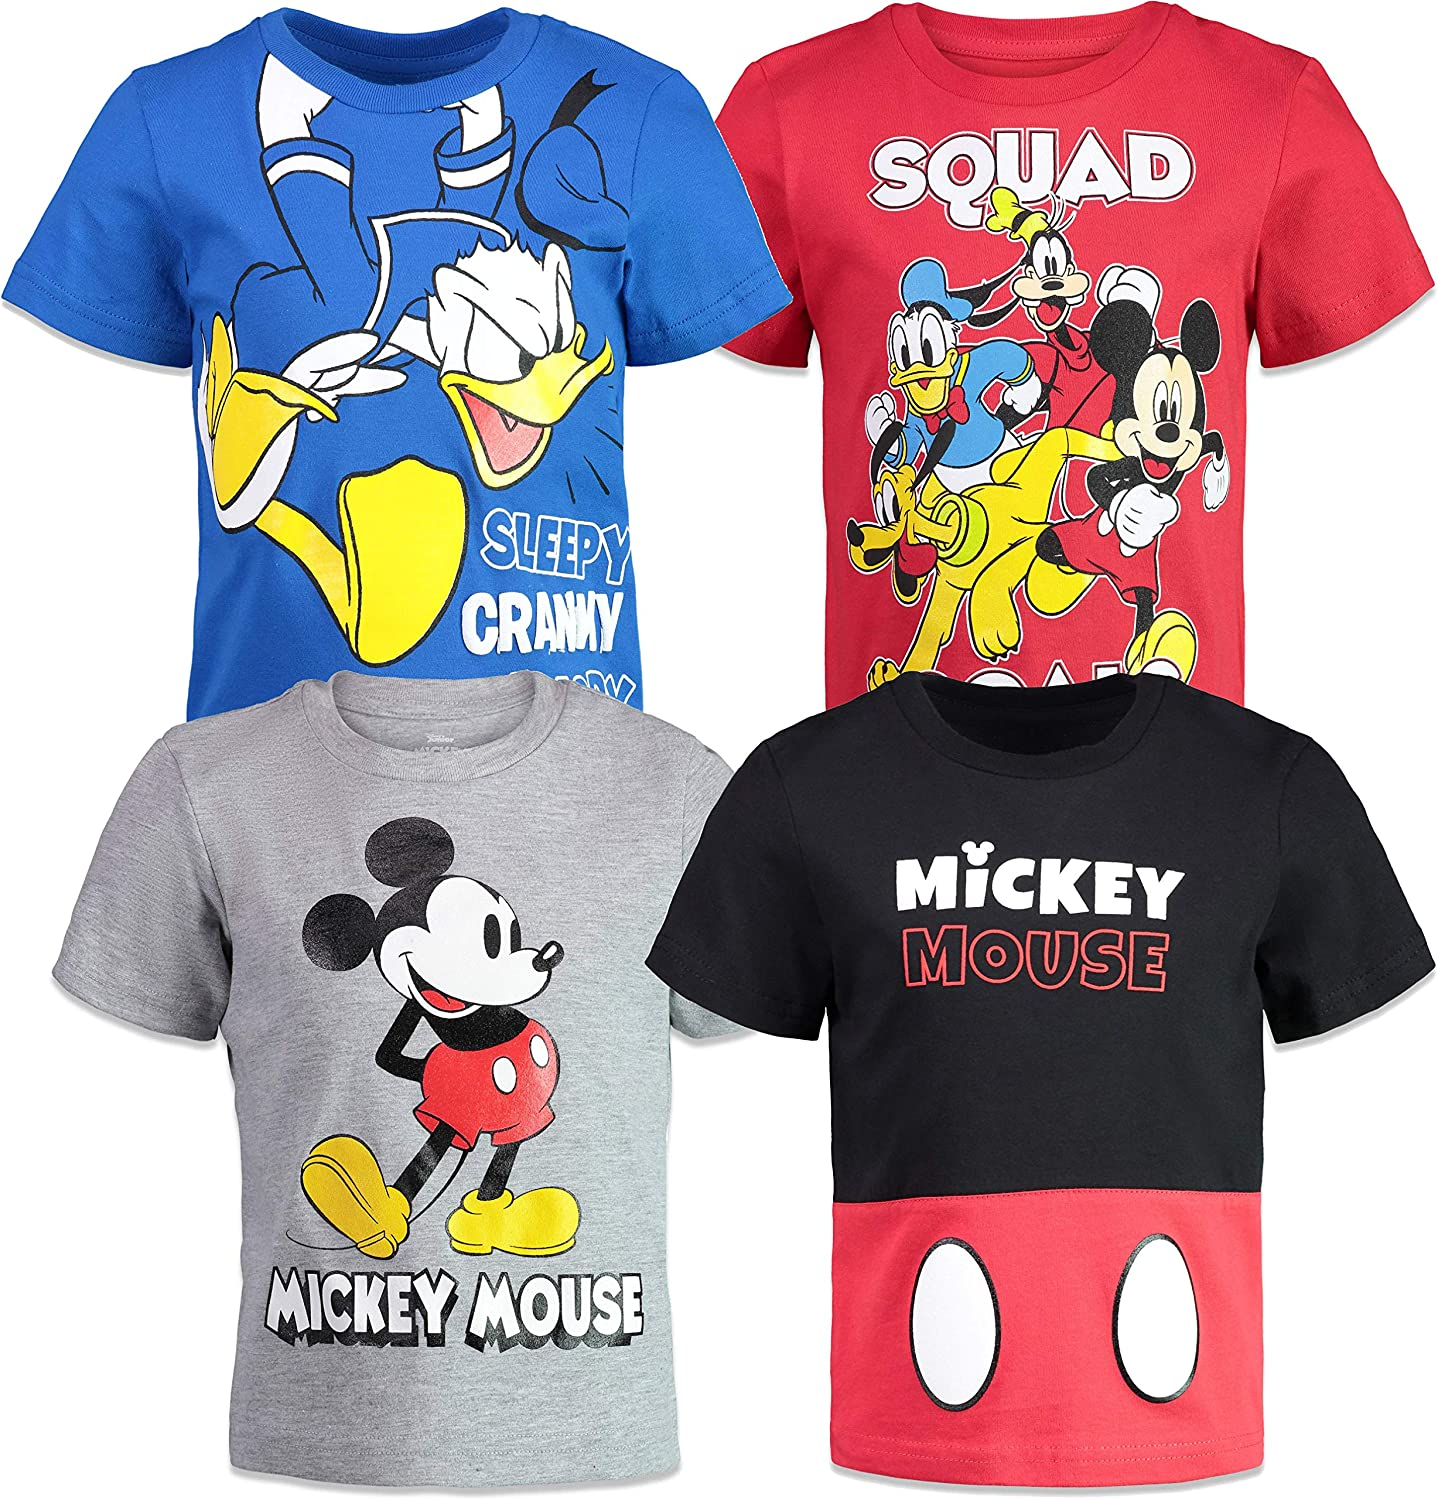 Spotted Zebra Boys Toddler /& Kids Mickey Mouse 4-Pack Short-Sleeve T-Shirts Brand